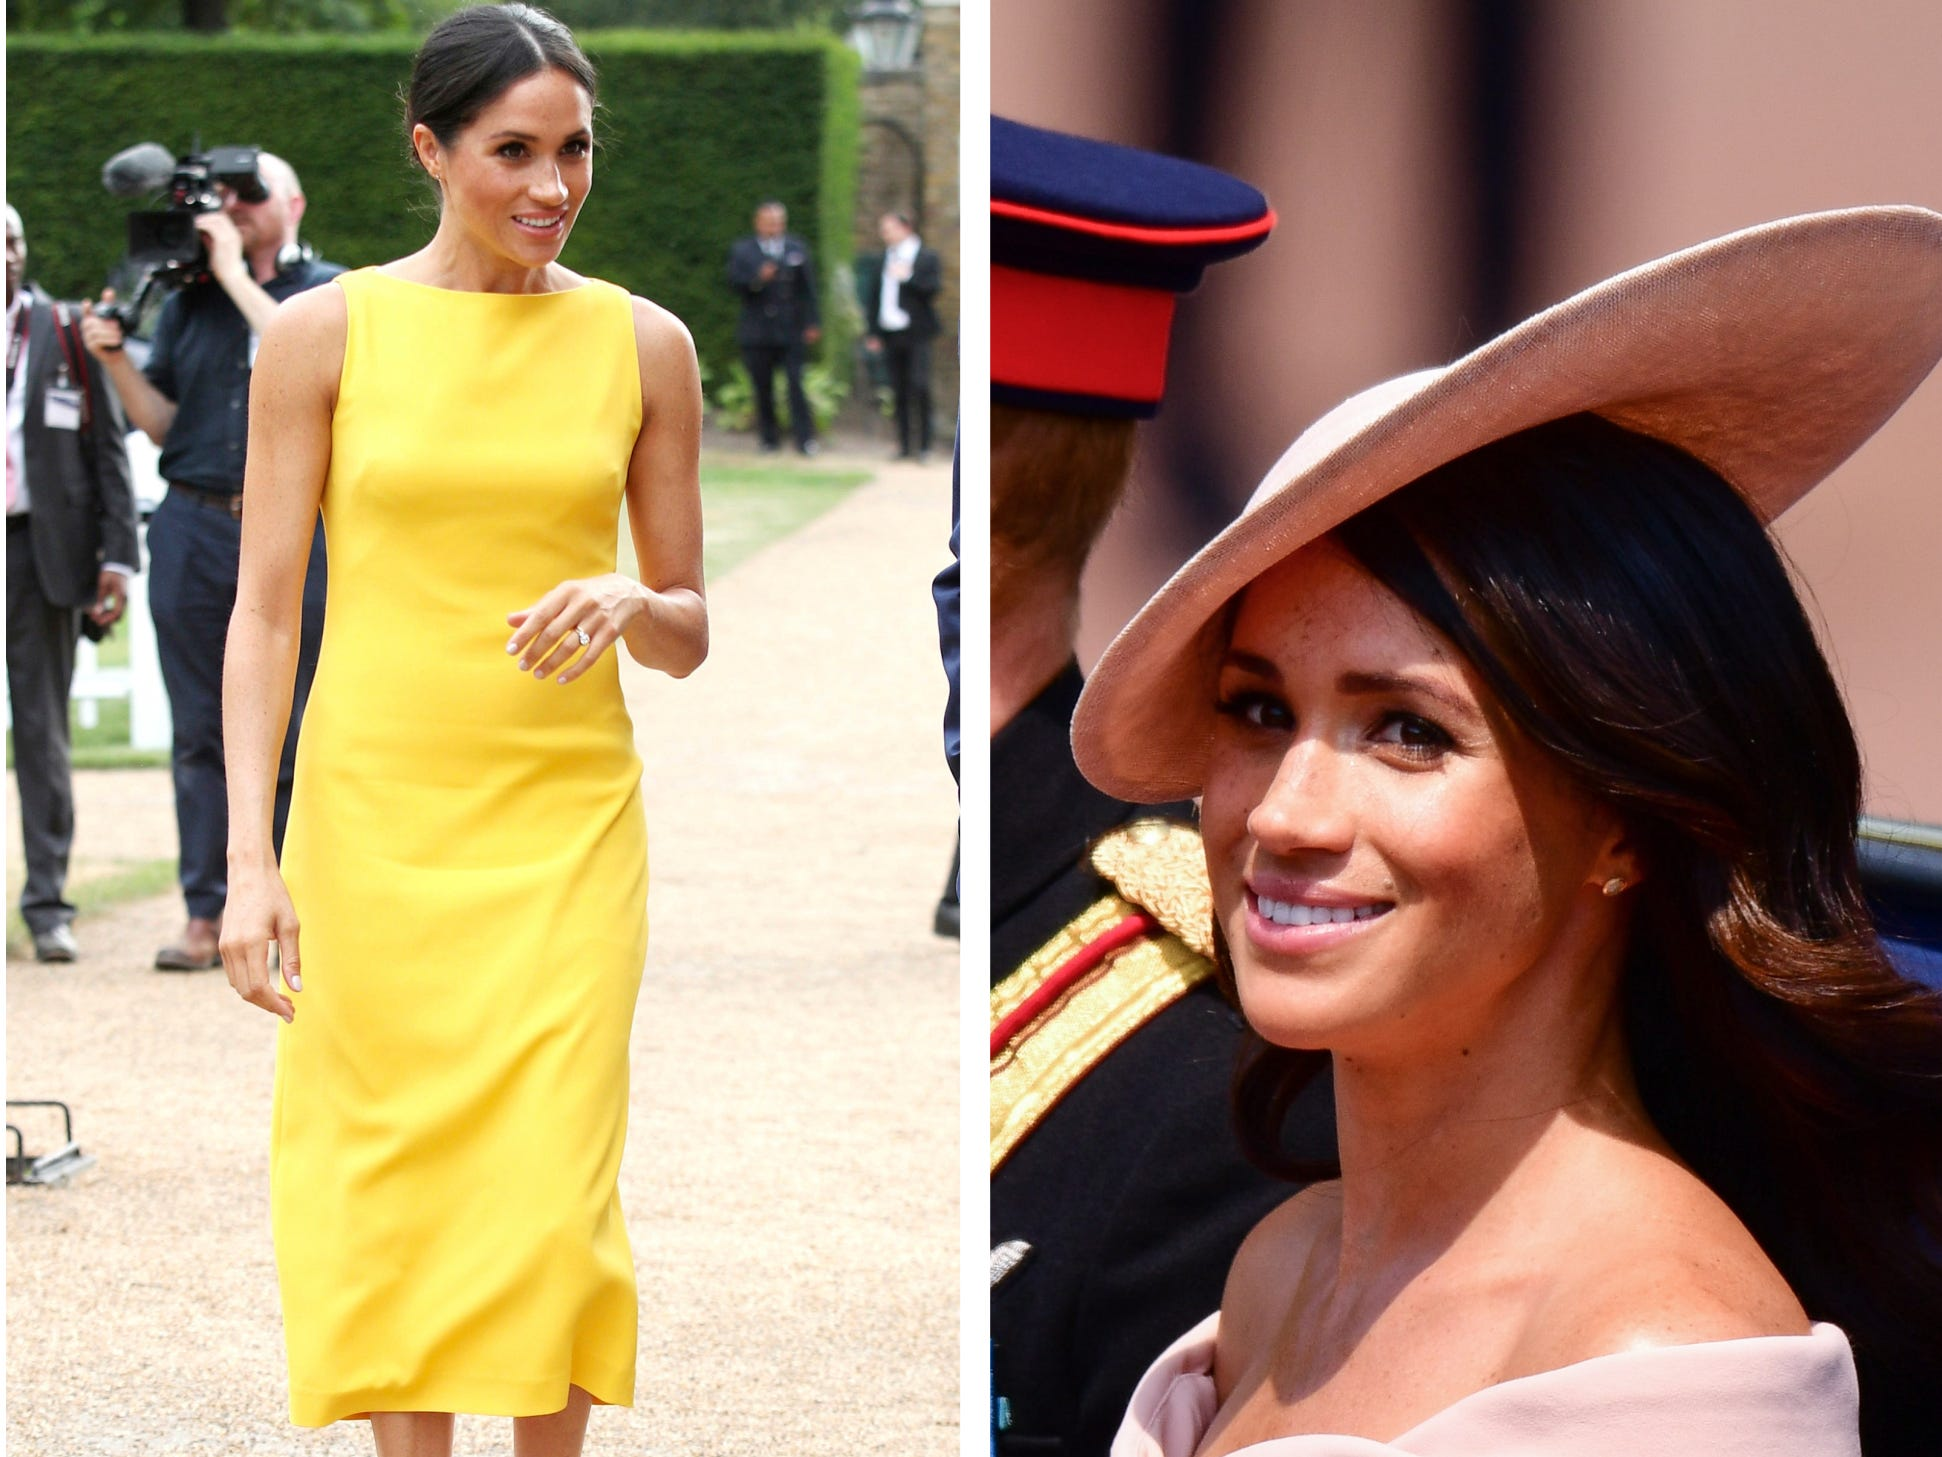 Duchess Meghan's hems are longer since the royal wedding, but she's flaunting convention by baring her shoulders.